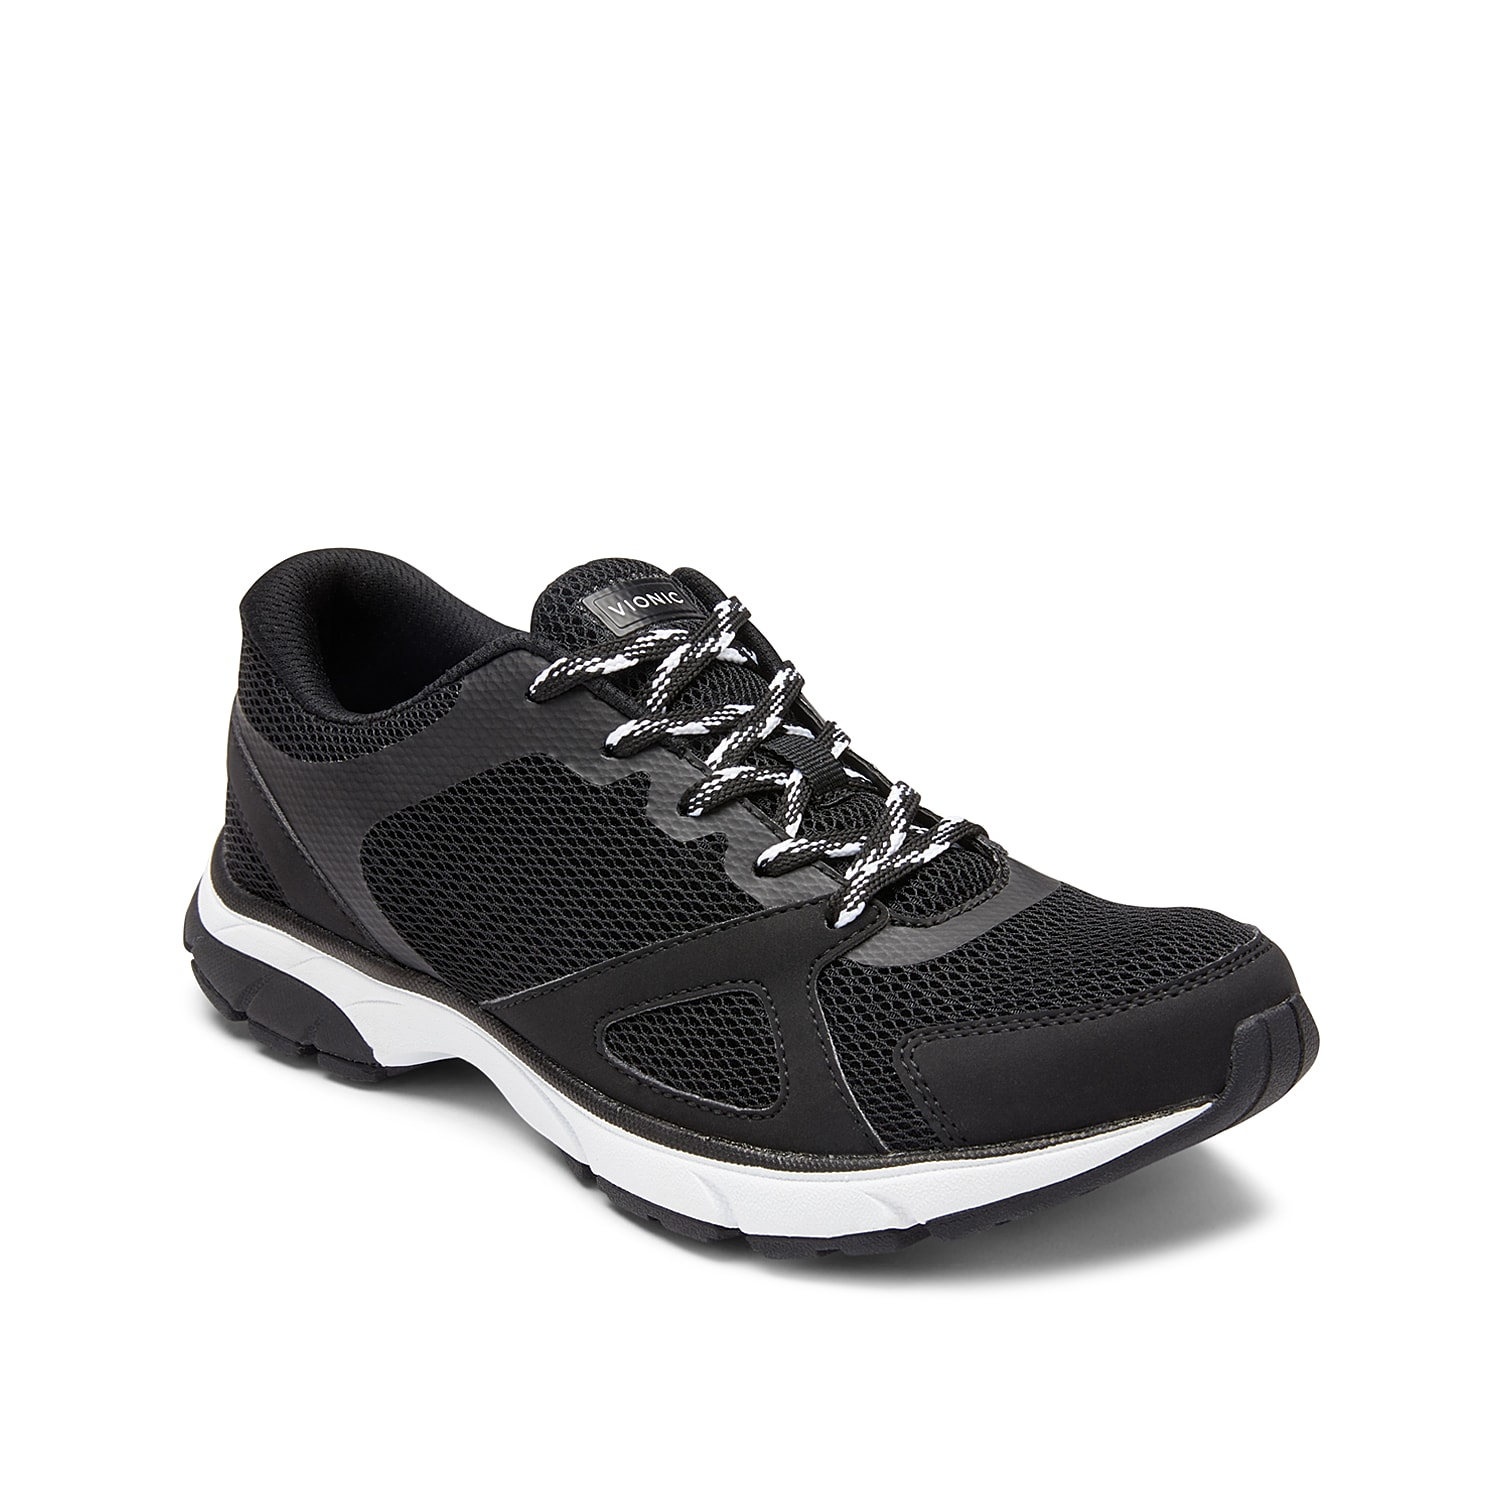 From working out to hanging out, the women\\\'s Tokyo walking shoe from Vionic will keep you feeling your best. A cushioned footbed, EVA midsole, and Dual Density rubber sole work together for daylong support.